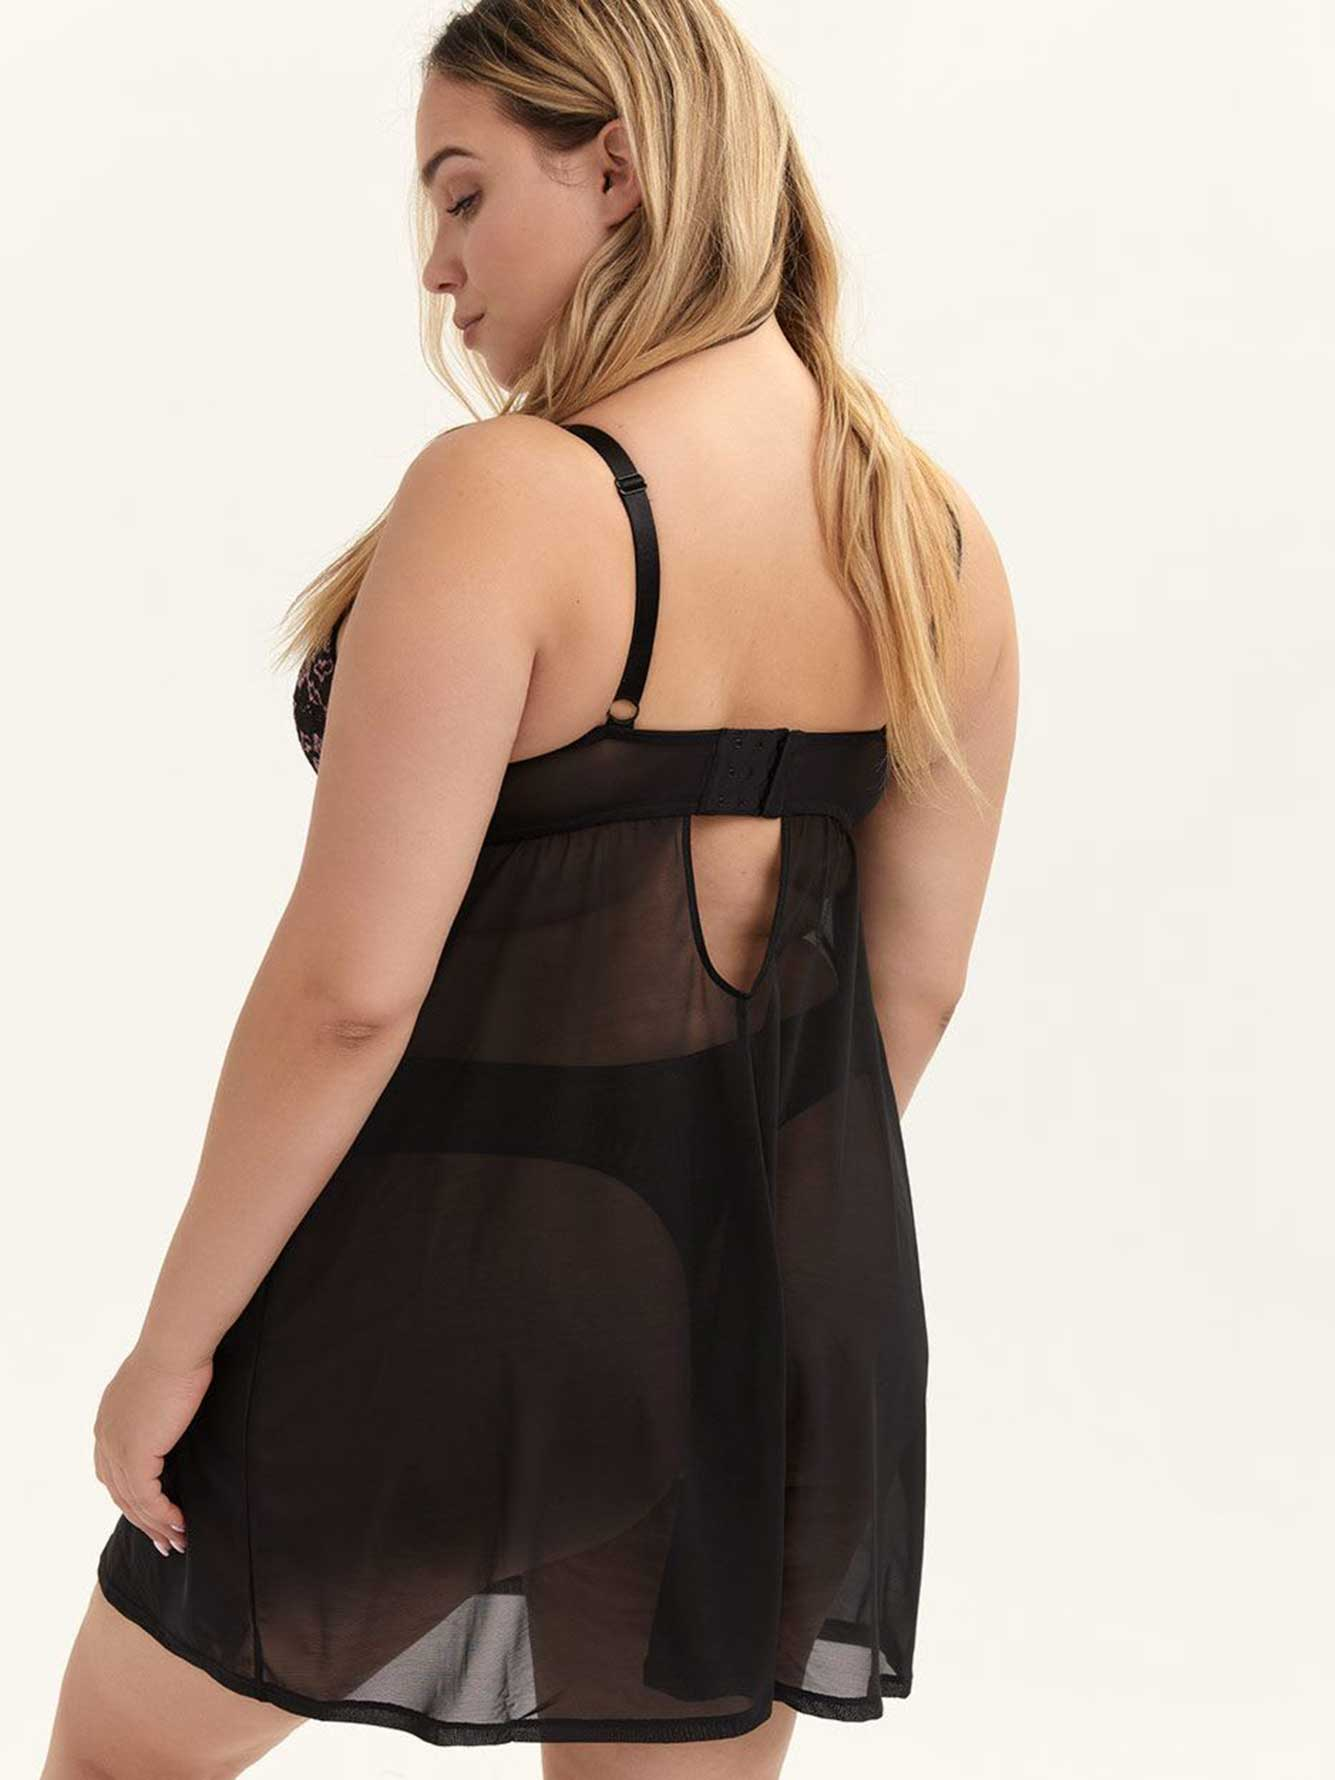 47a5b15d84 Underwire Nightie - Déesse Collection